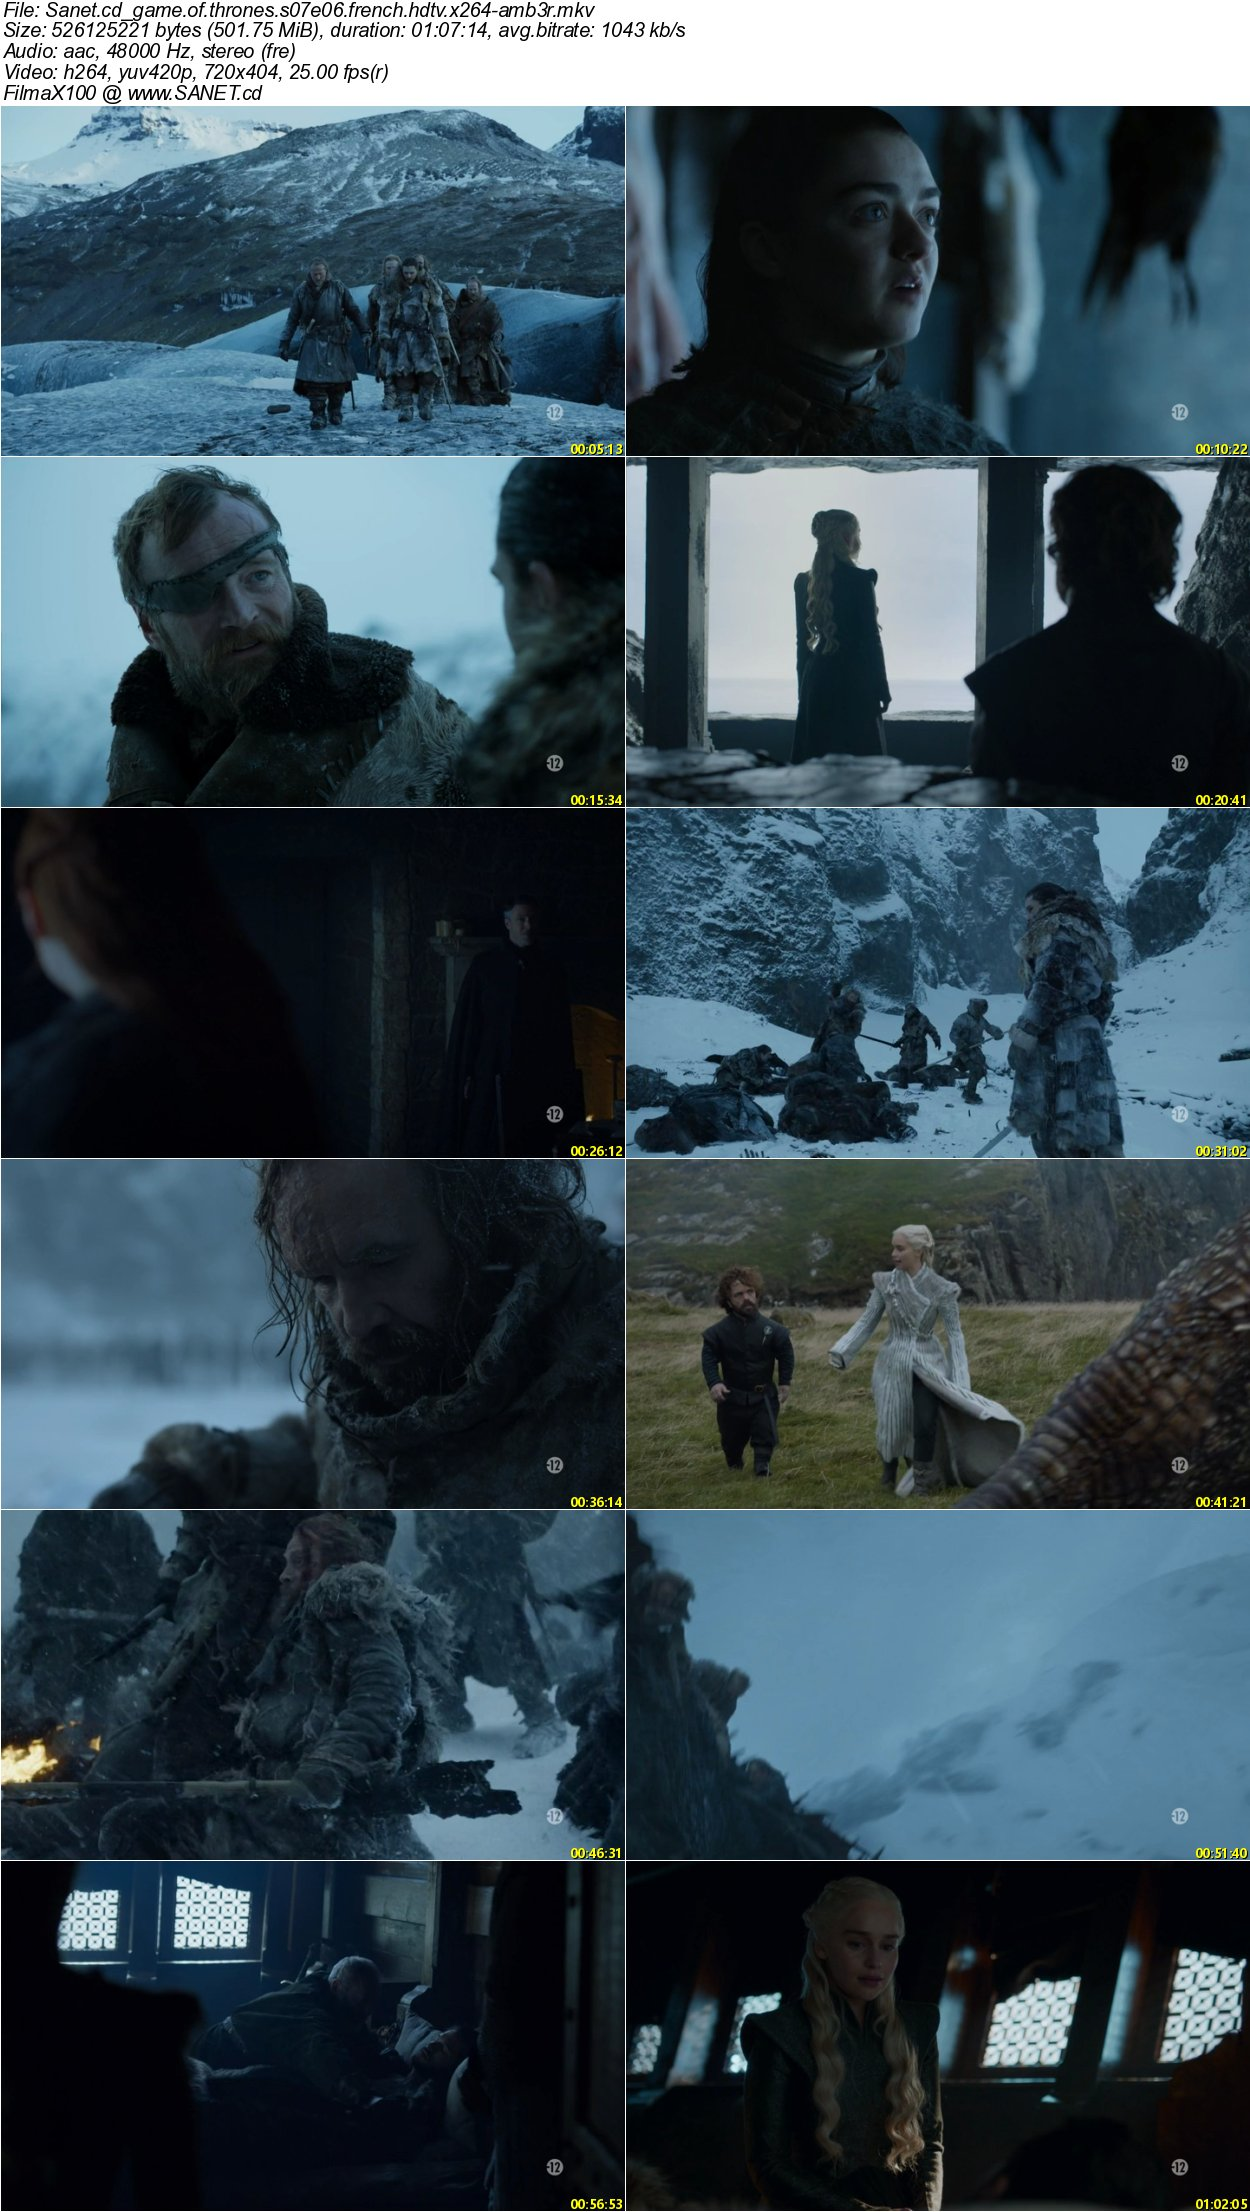 download game of thrones s07e06 french hdtv x264 amb3r softarchive. Black Bedroom Furniture Sets. Home Design Ideas